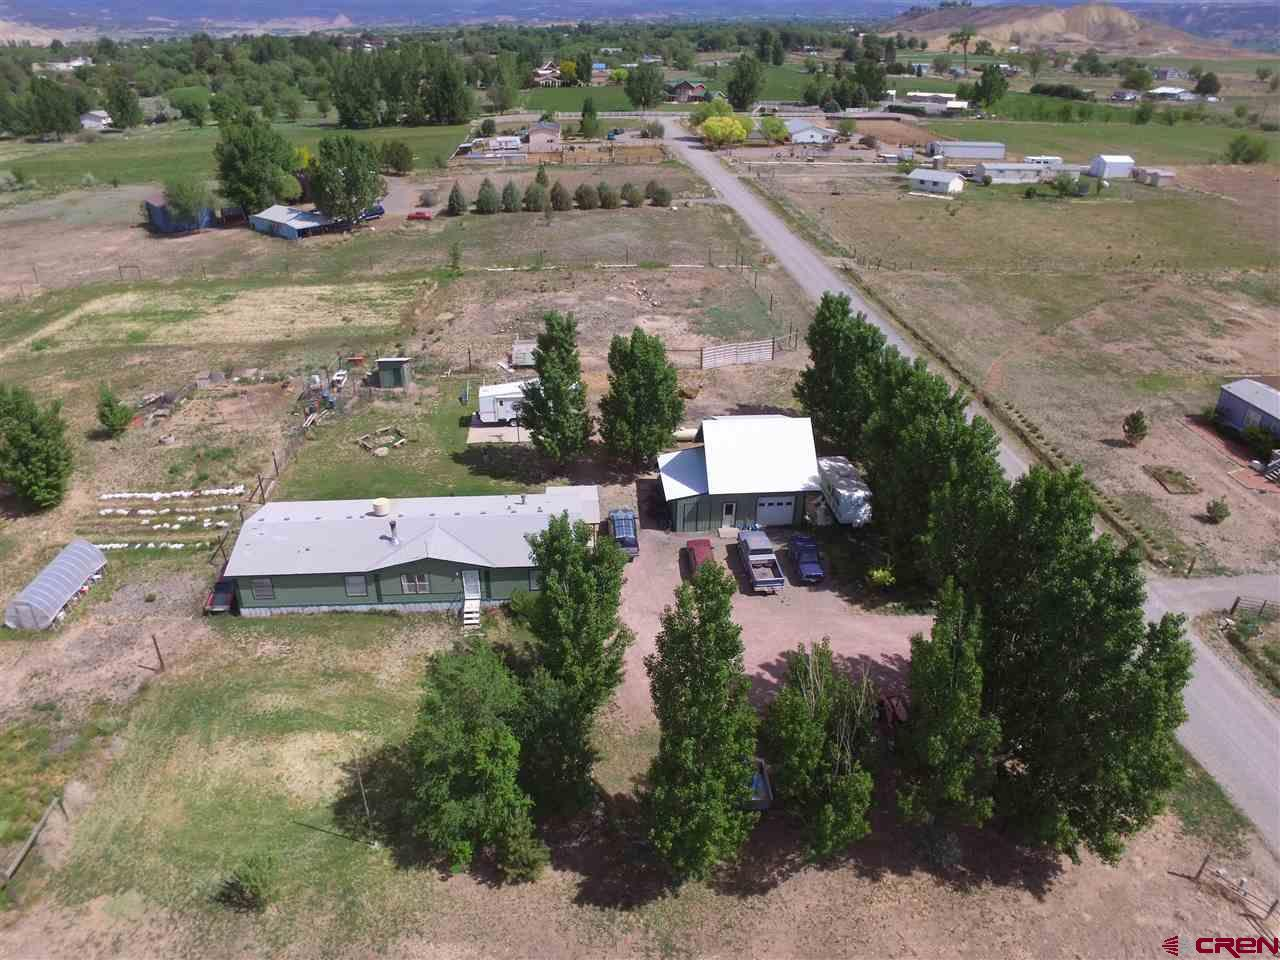 Sustainable Country Living with Sweeping Grand Mesa Views!  Intelligently set up on 4.86 acres with a beautiful 1768 sq ft home, 2 story 960 sq ft garage/shop/office, an equipment shed, greenhouse and an amazing array of producing fruits.  Surrounded by an 8' deer fence, you'll find 5 rows of four varieties of raspberries, 90 grapevines boasting multiple seedless varieties and a seeded wine grape, plus blackberries and blueberries, all organically grown.  Fruit trees include bing cherry, Jonagold apple, apricot, plum and peach.  The property is equipped with animal pens and a chicken coop, with room to pasture.  Irrigation water through the HOA, with senior rights including interest in two reservoirs which allow for late water, and a covered irrigation pump house.  The 4 bedroom 2 bath home has been freshly painted and carpeted, with newly installed oven and dishwasher, and updated countertops.   The wood stove can efficiently heat the entire home.  Located near Hart's Basin, with wonderful views of the Mesa and valley, the groundwork has been laid for wonderful high country living.  Welcome home!